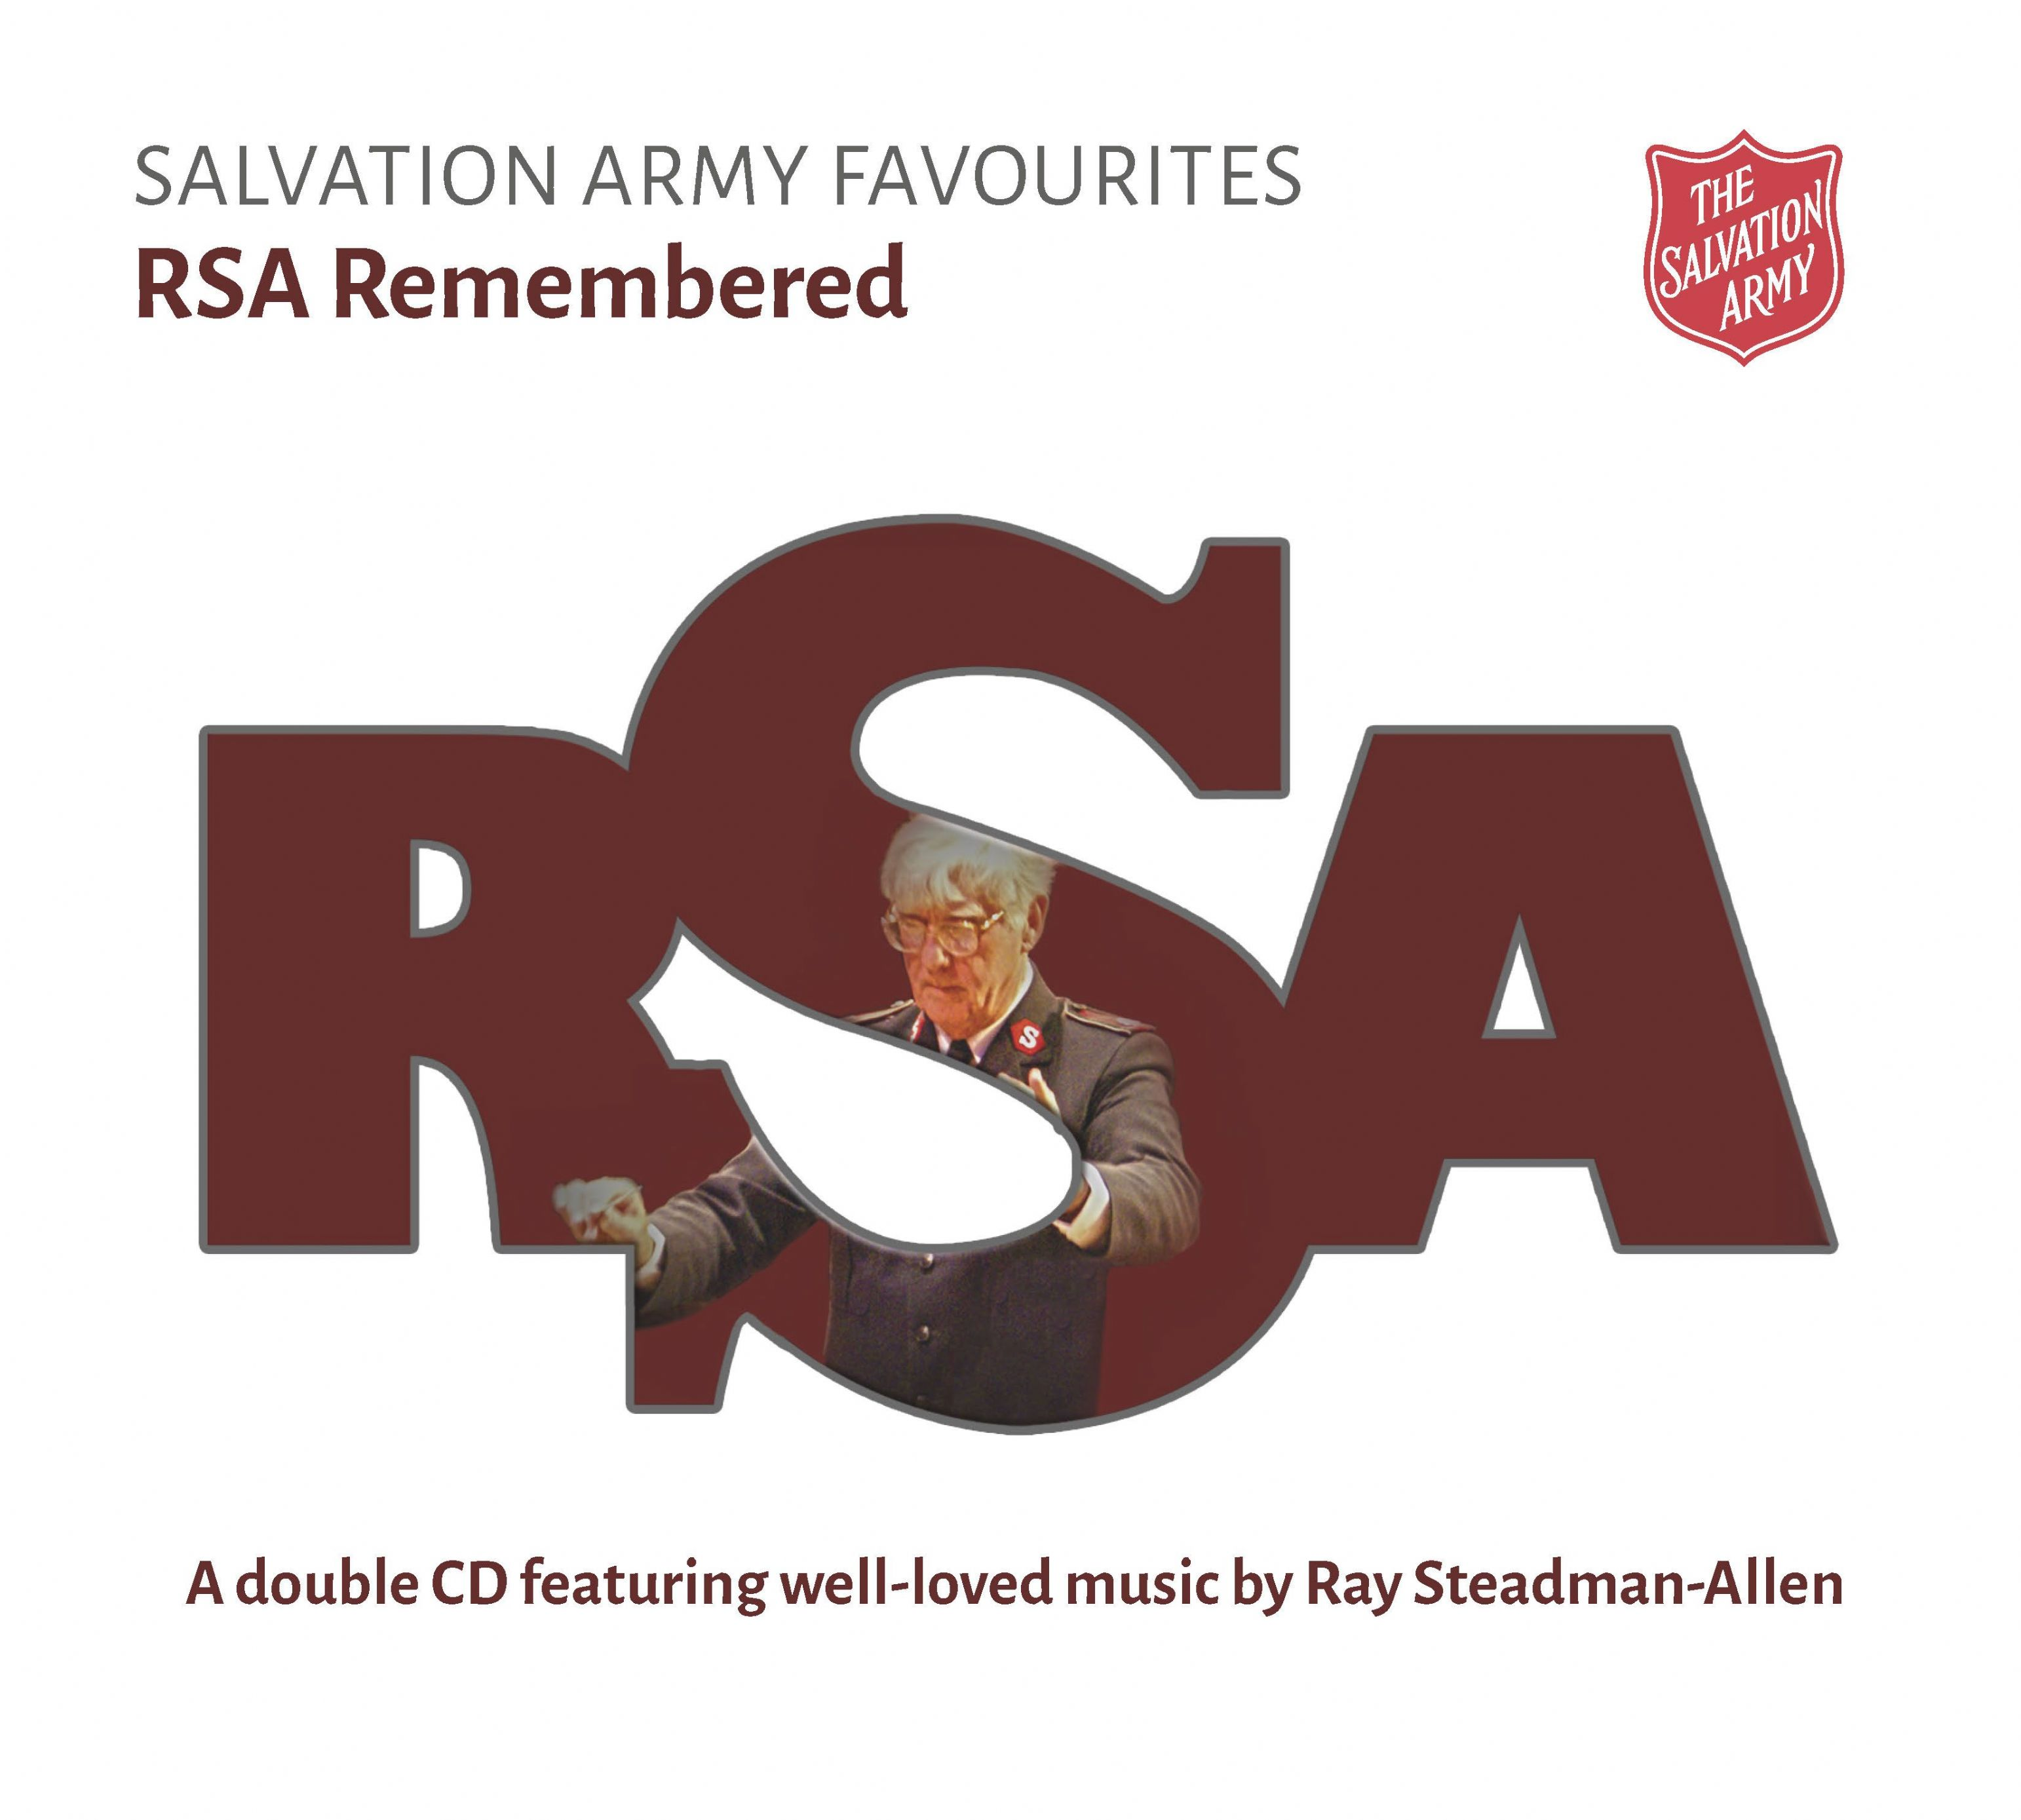 Salvation Army Favourites - RSA Remembered - Double CD